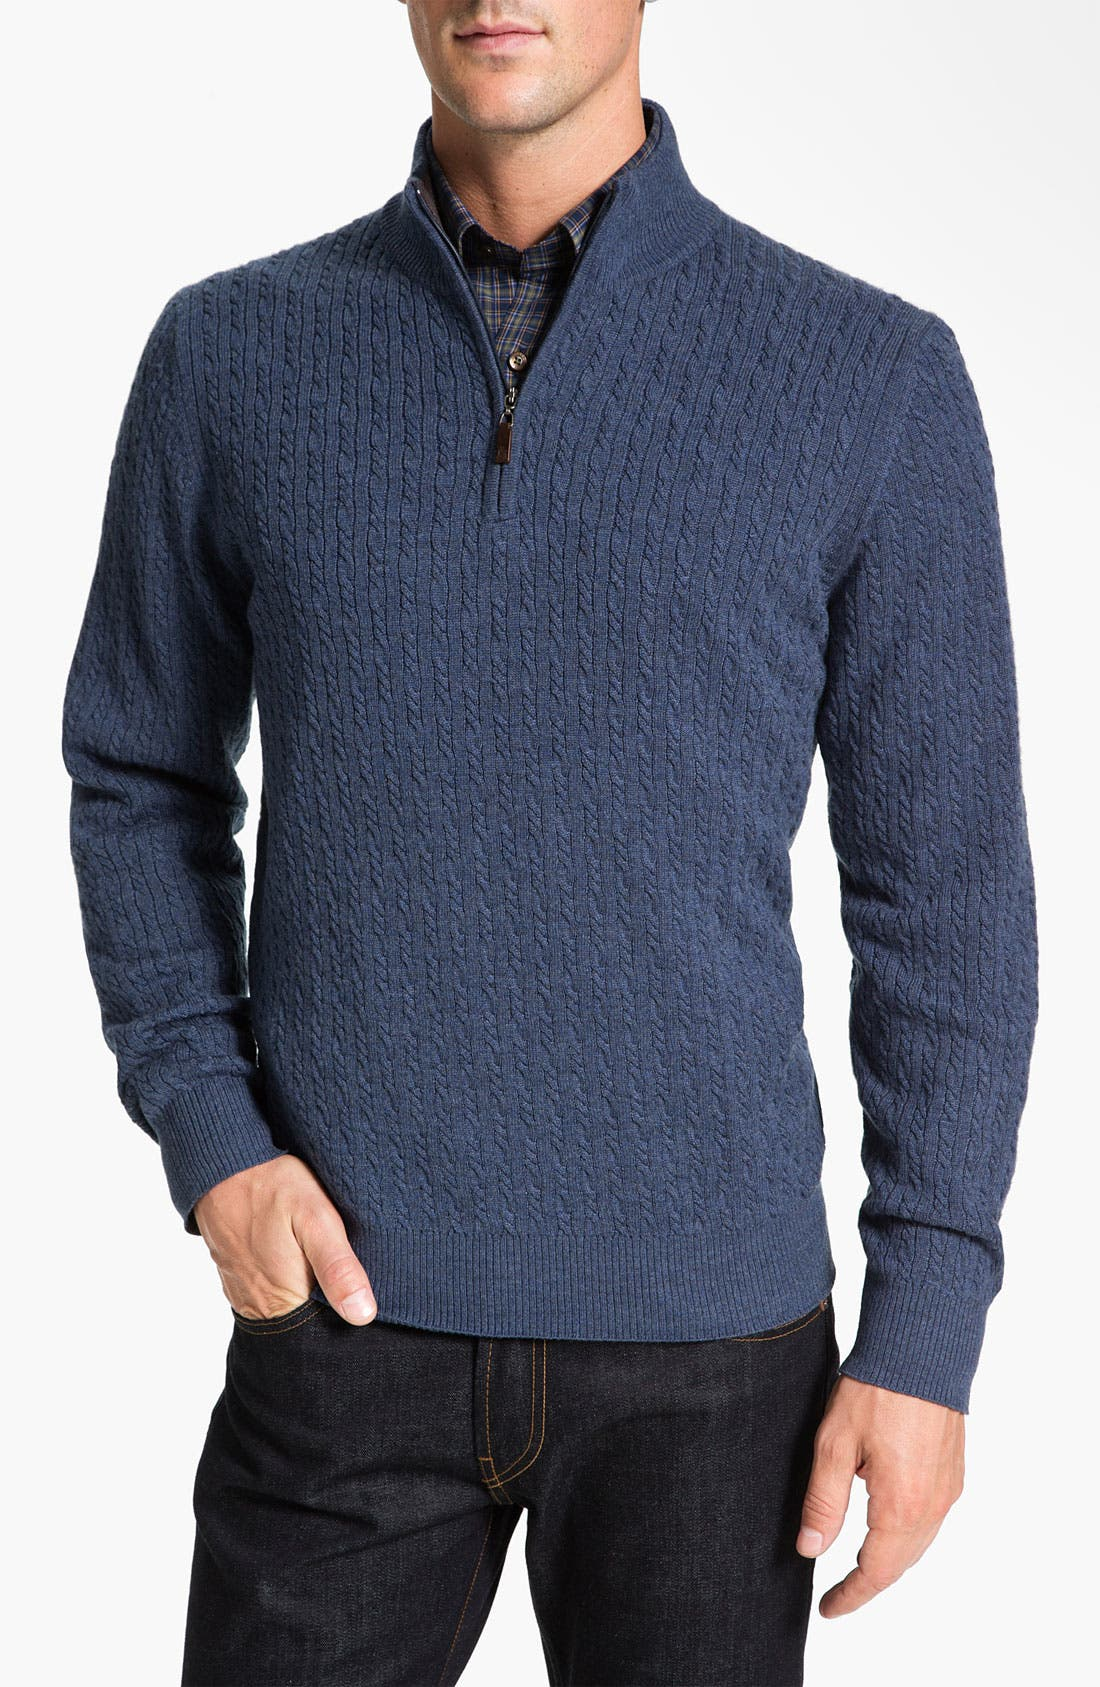 Main Image - Robert Talbott Cable Knit Merino Wool Sweater (Online Only)